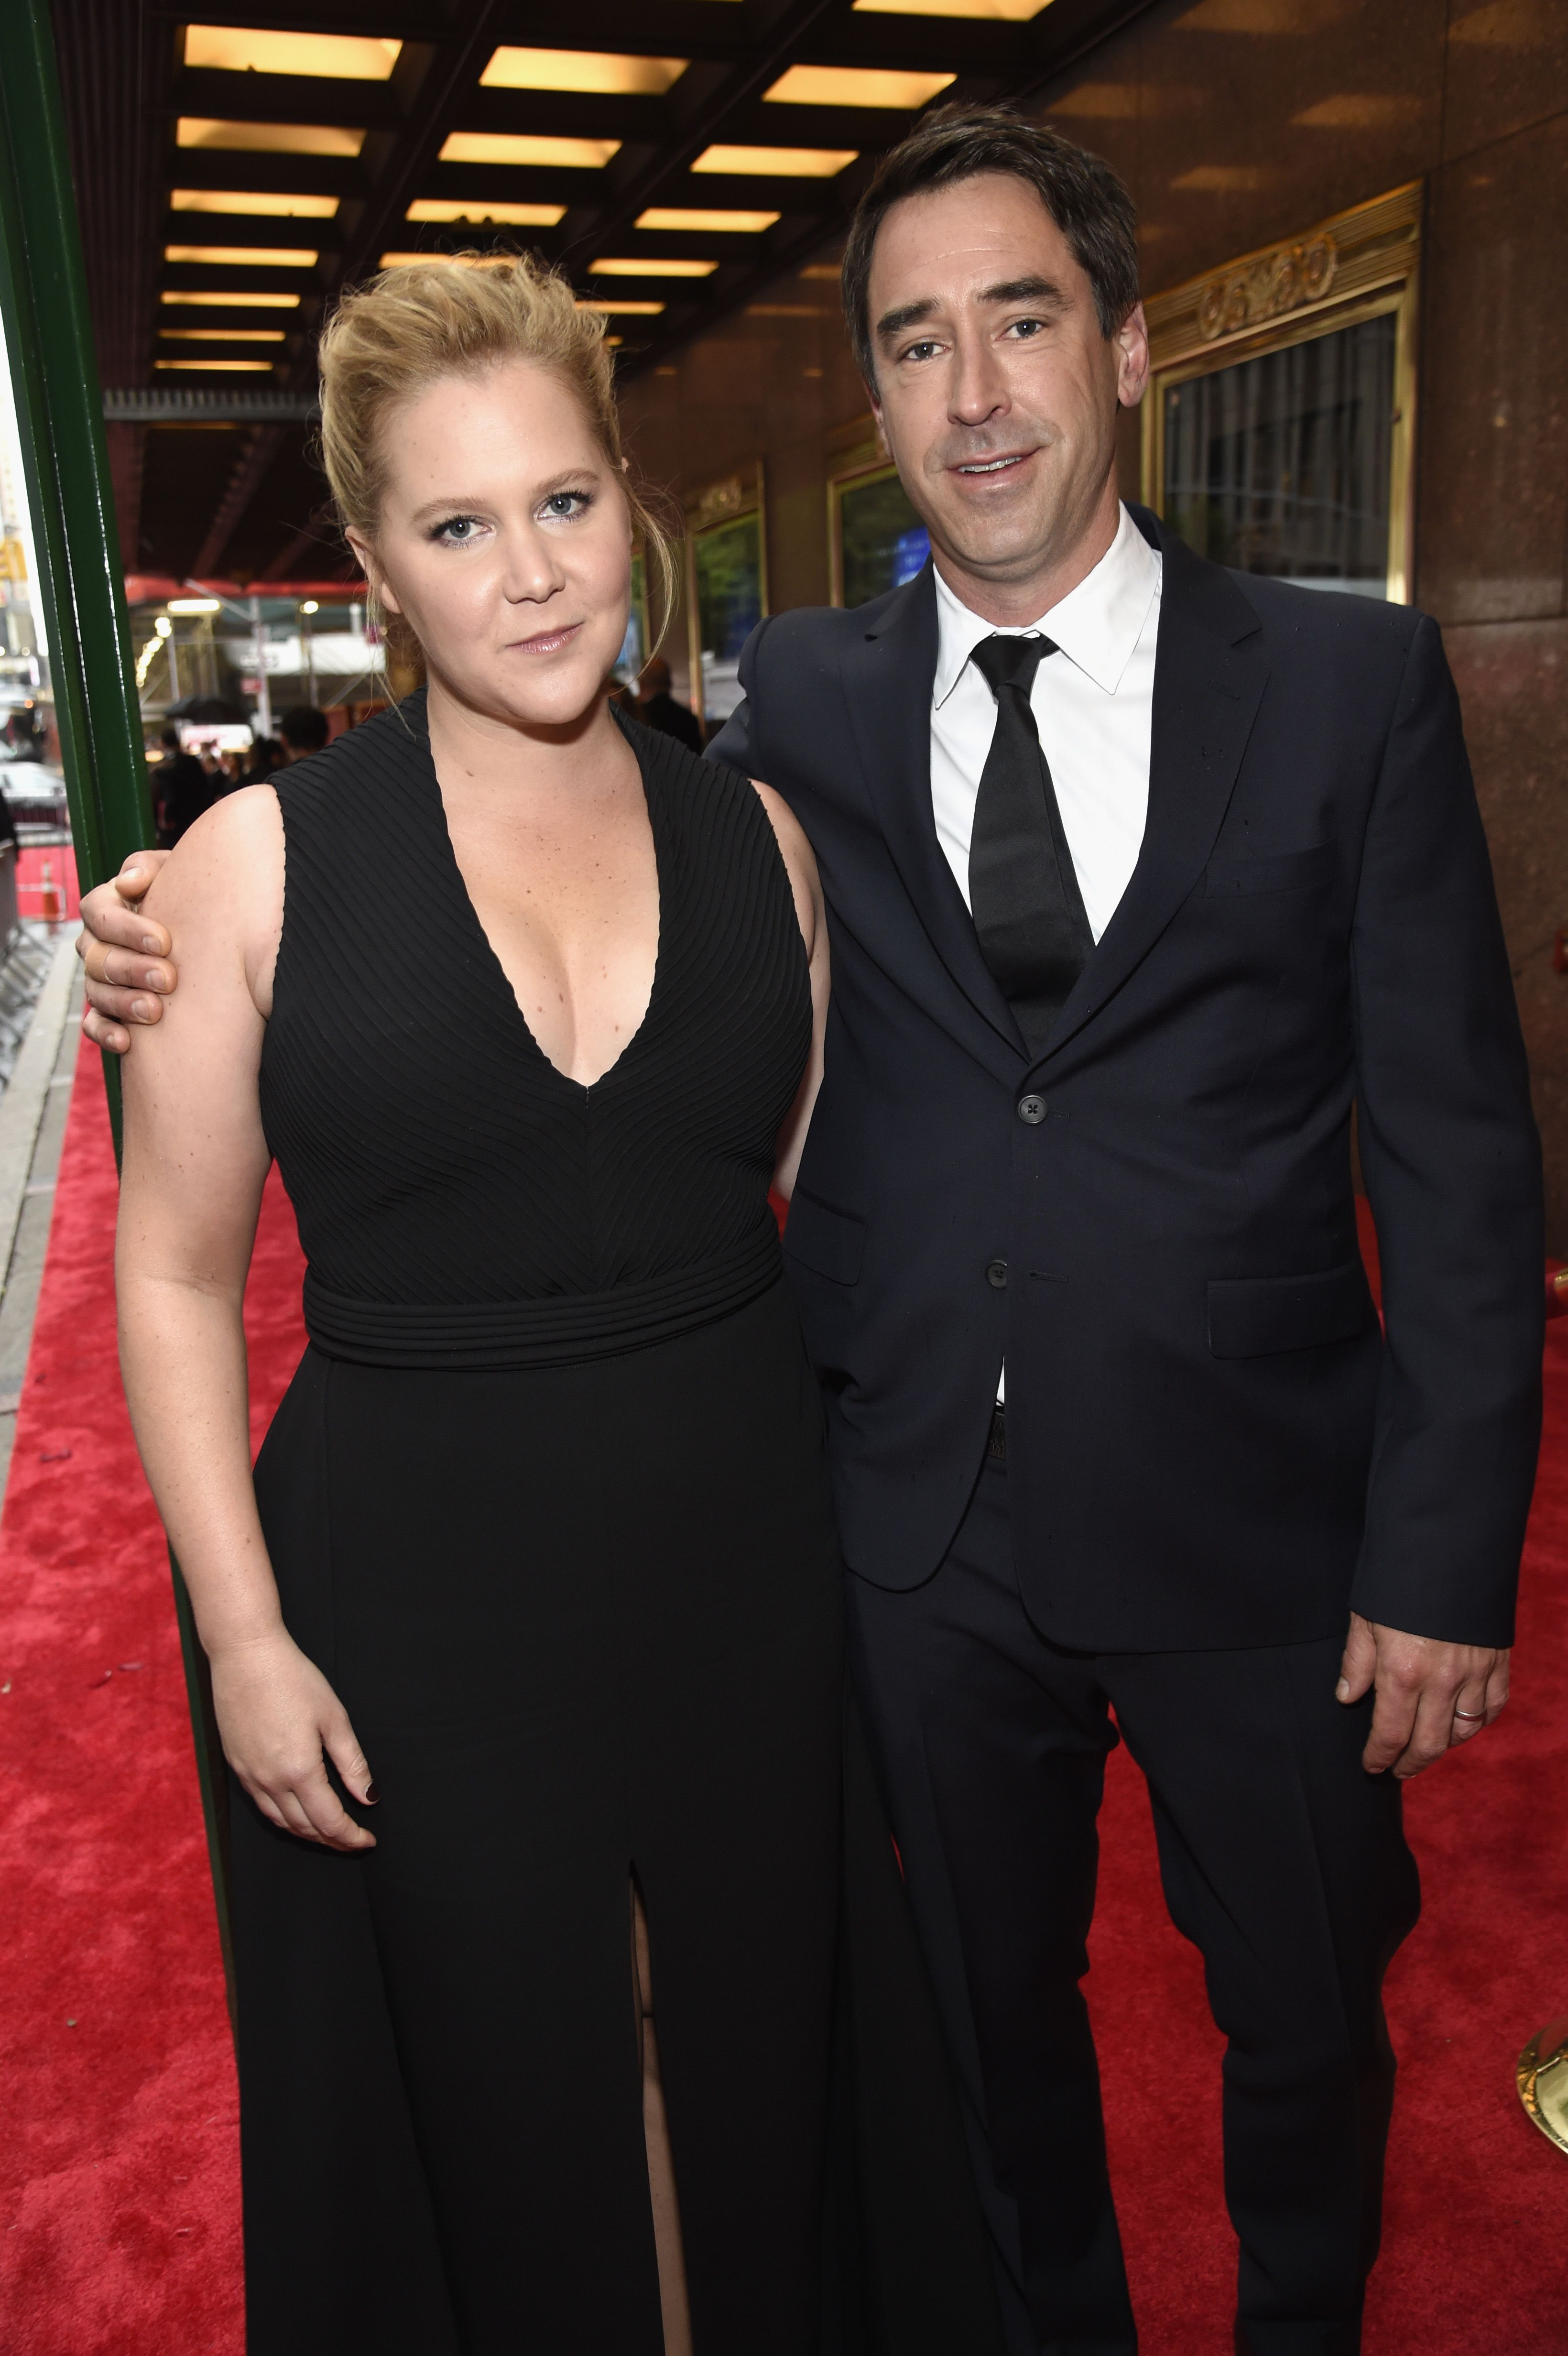 Actress and comedian Amy Schumer shocked the press when she revealed her secret February wedding to chef Chris Fischer via Instagram .